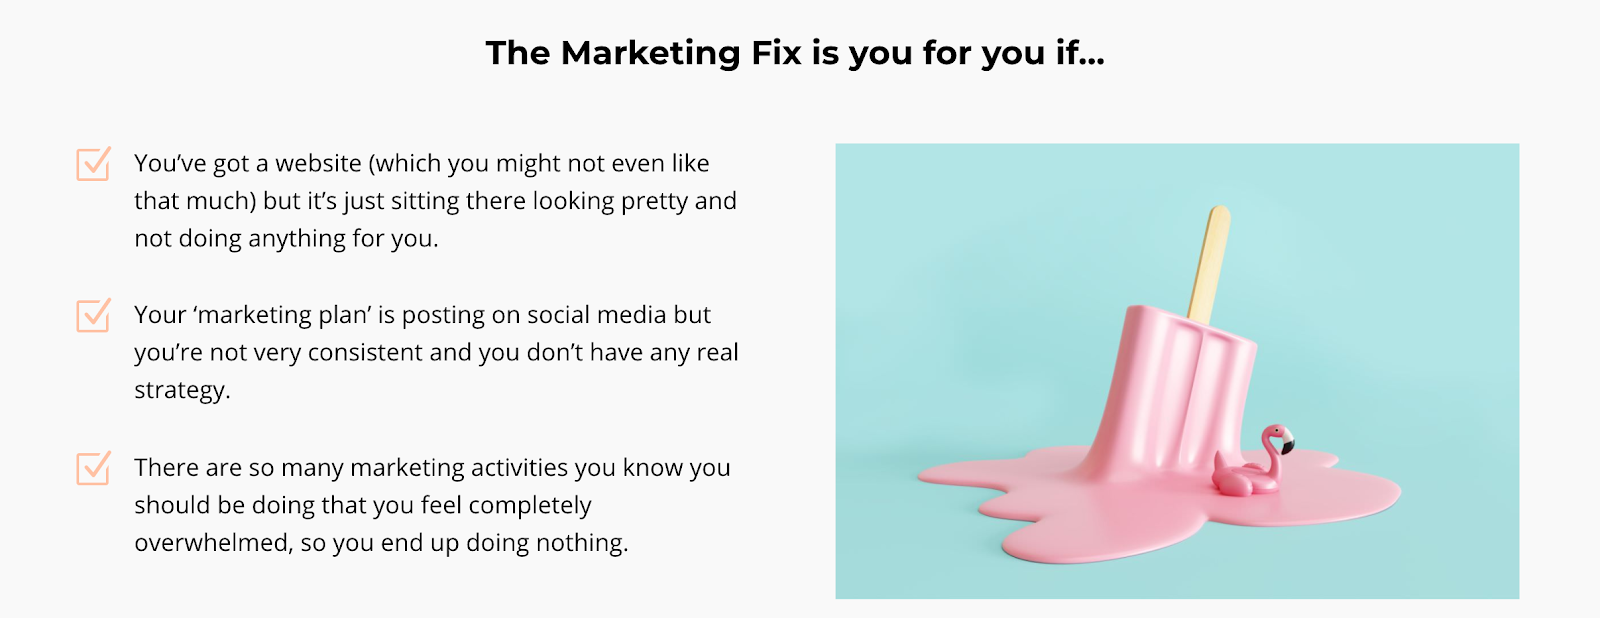 the marketing fix is for you if